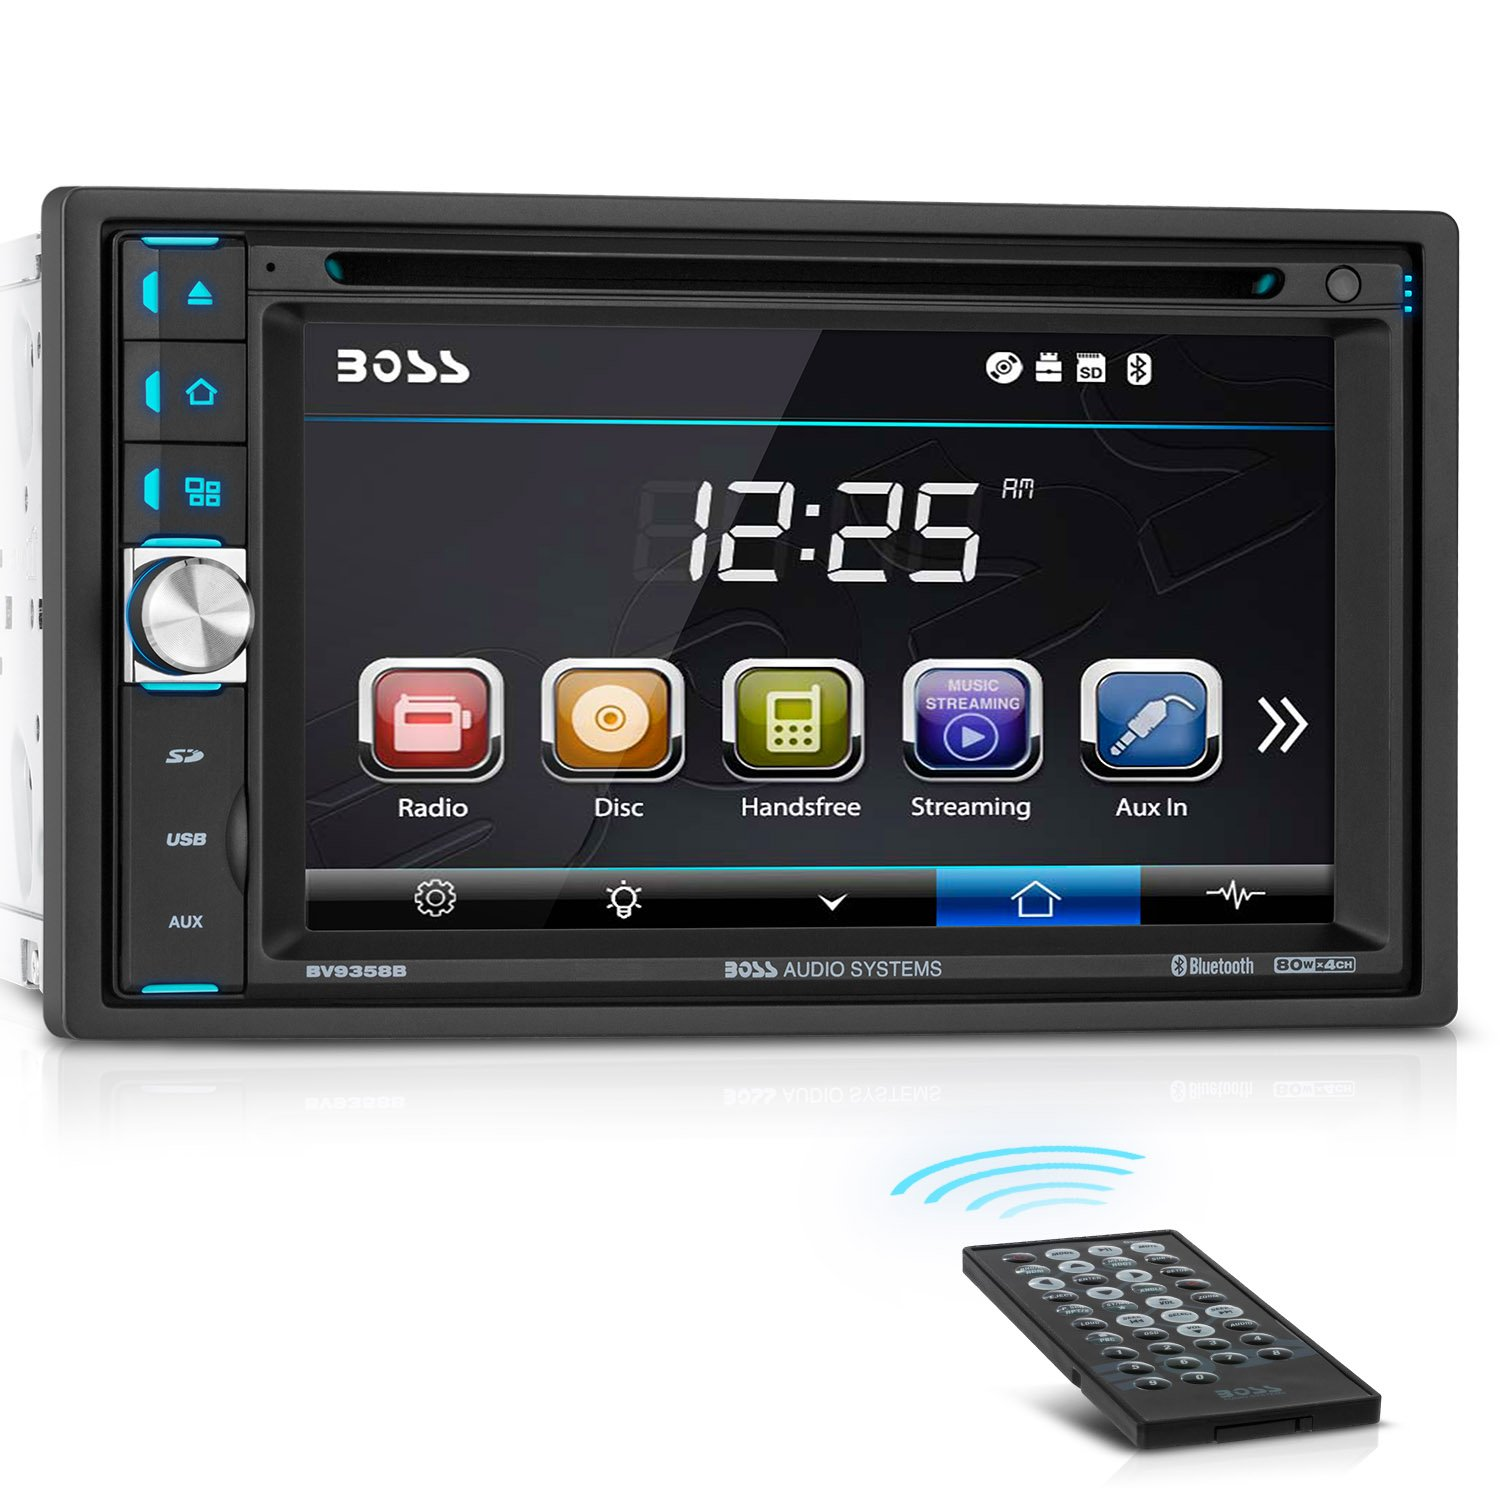 BOSS Audio BV9358B Car DVD Player - Double Din, Bluetooth Audio and Calling, 6.2 Inch LCD Touchscreen Monitor, MP3 Player, CD, DVD, Wma, USB, SD, Auxiliary Input, Am FM Radio Receiver by BOSS Audio Systems